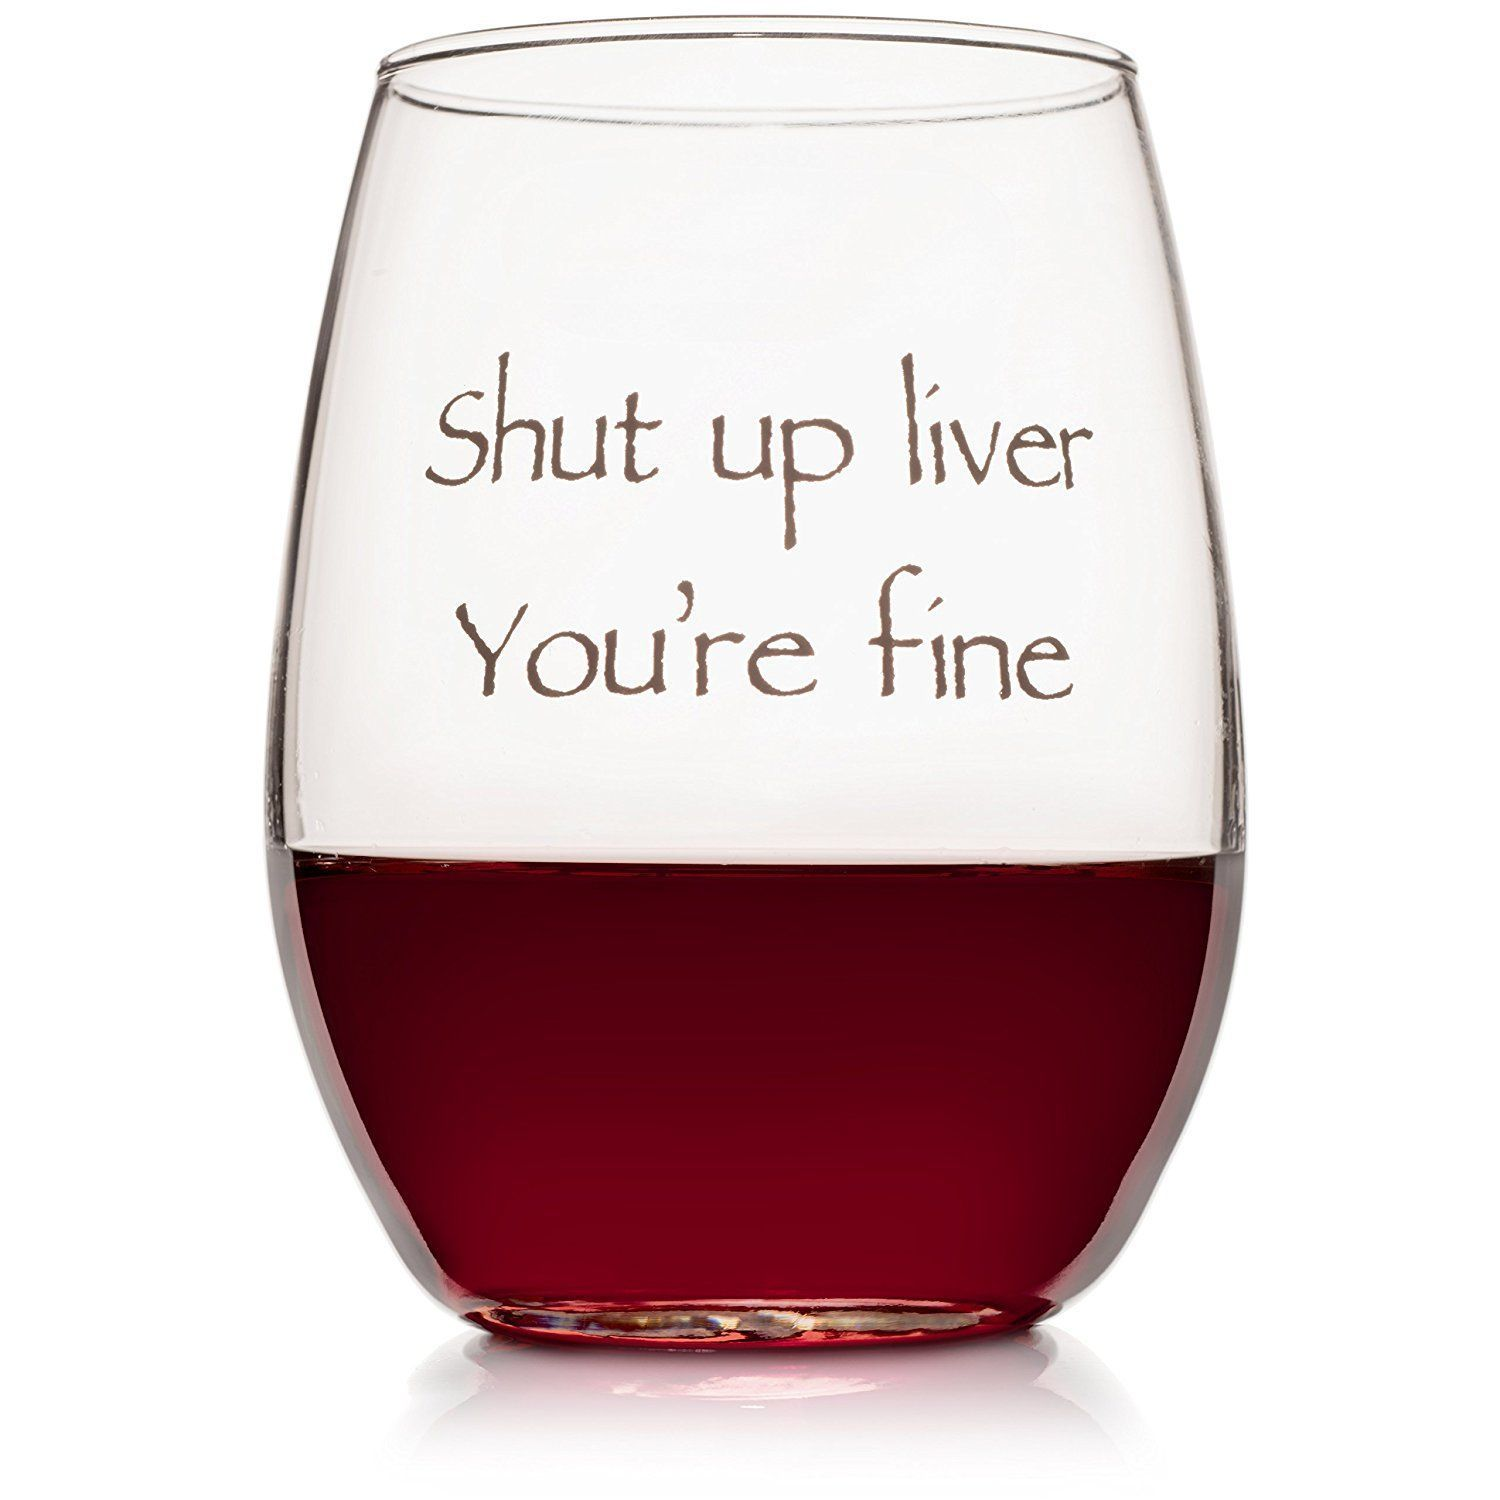 Funny Stemless Wine Glass Forget Every Worries When You Are In Mood Of Drinking Some Wine In This Fu Funny Wine Glass Wine Glass Sayings Funny Wine Glasses